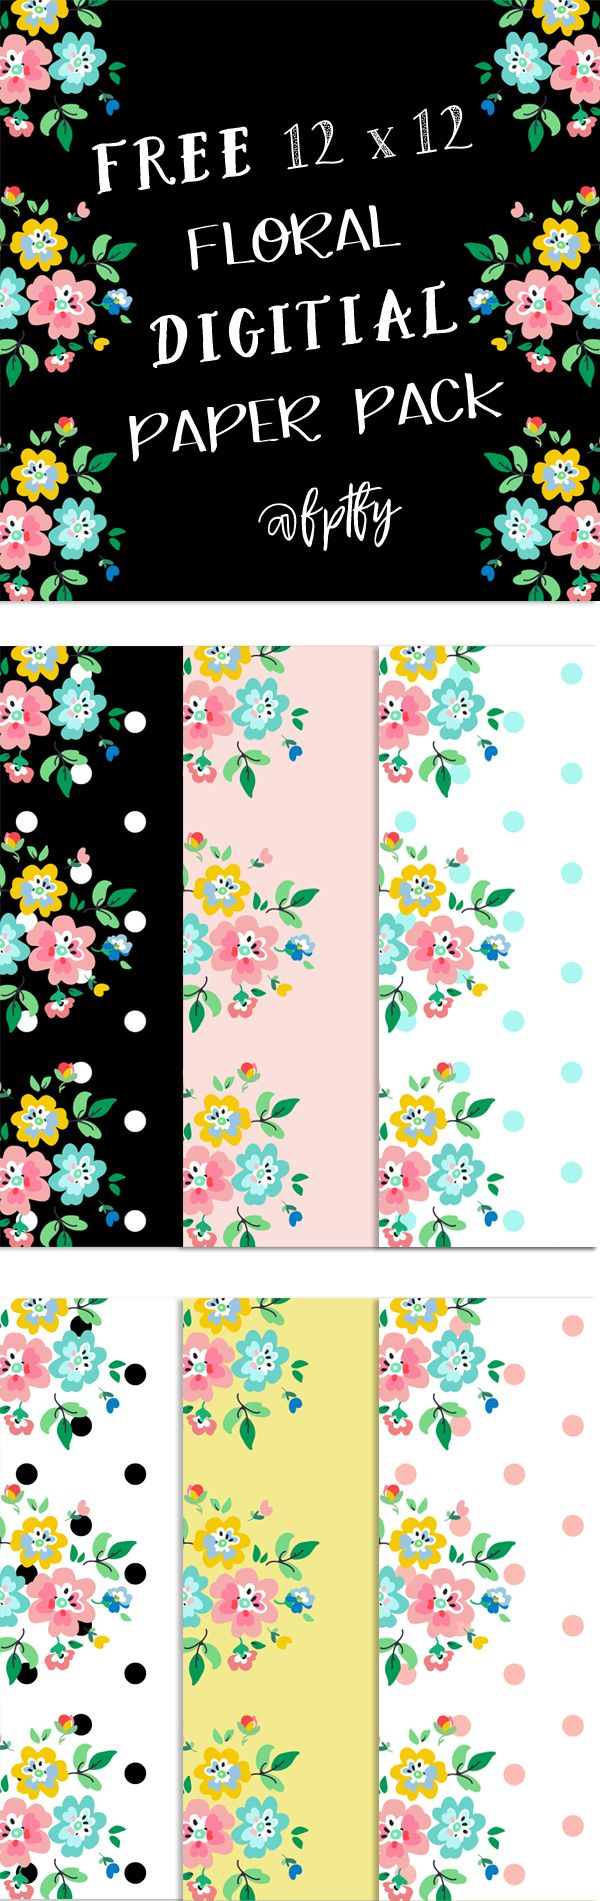 Scrapbooking Paper: Floral Delight! - Free Pretty Things For You